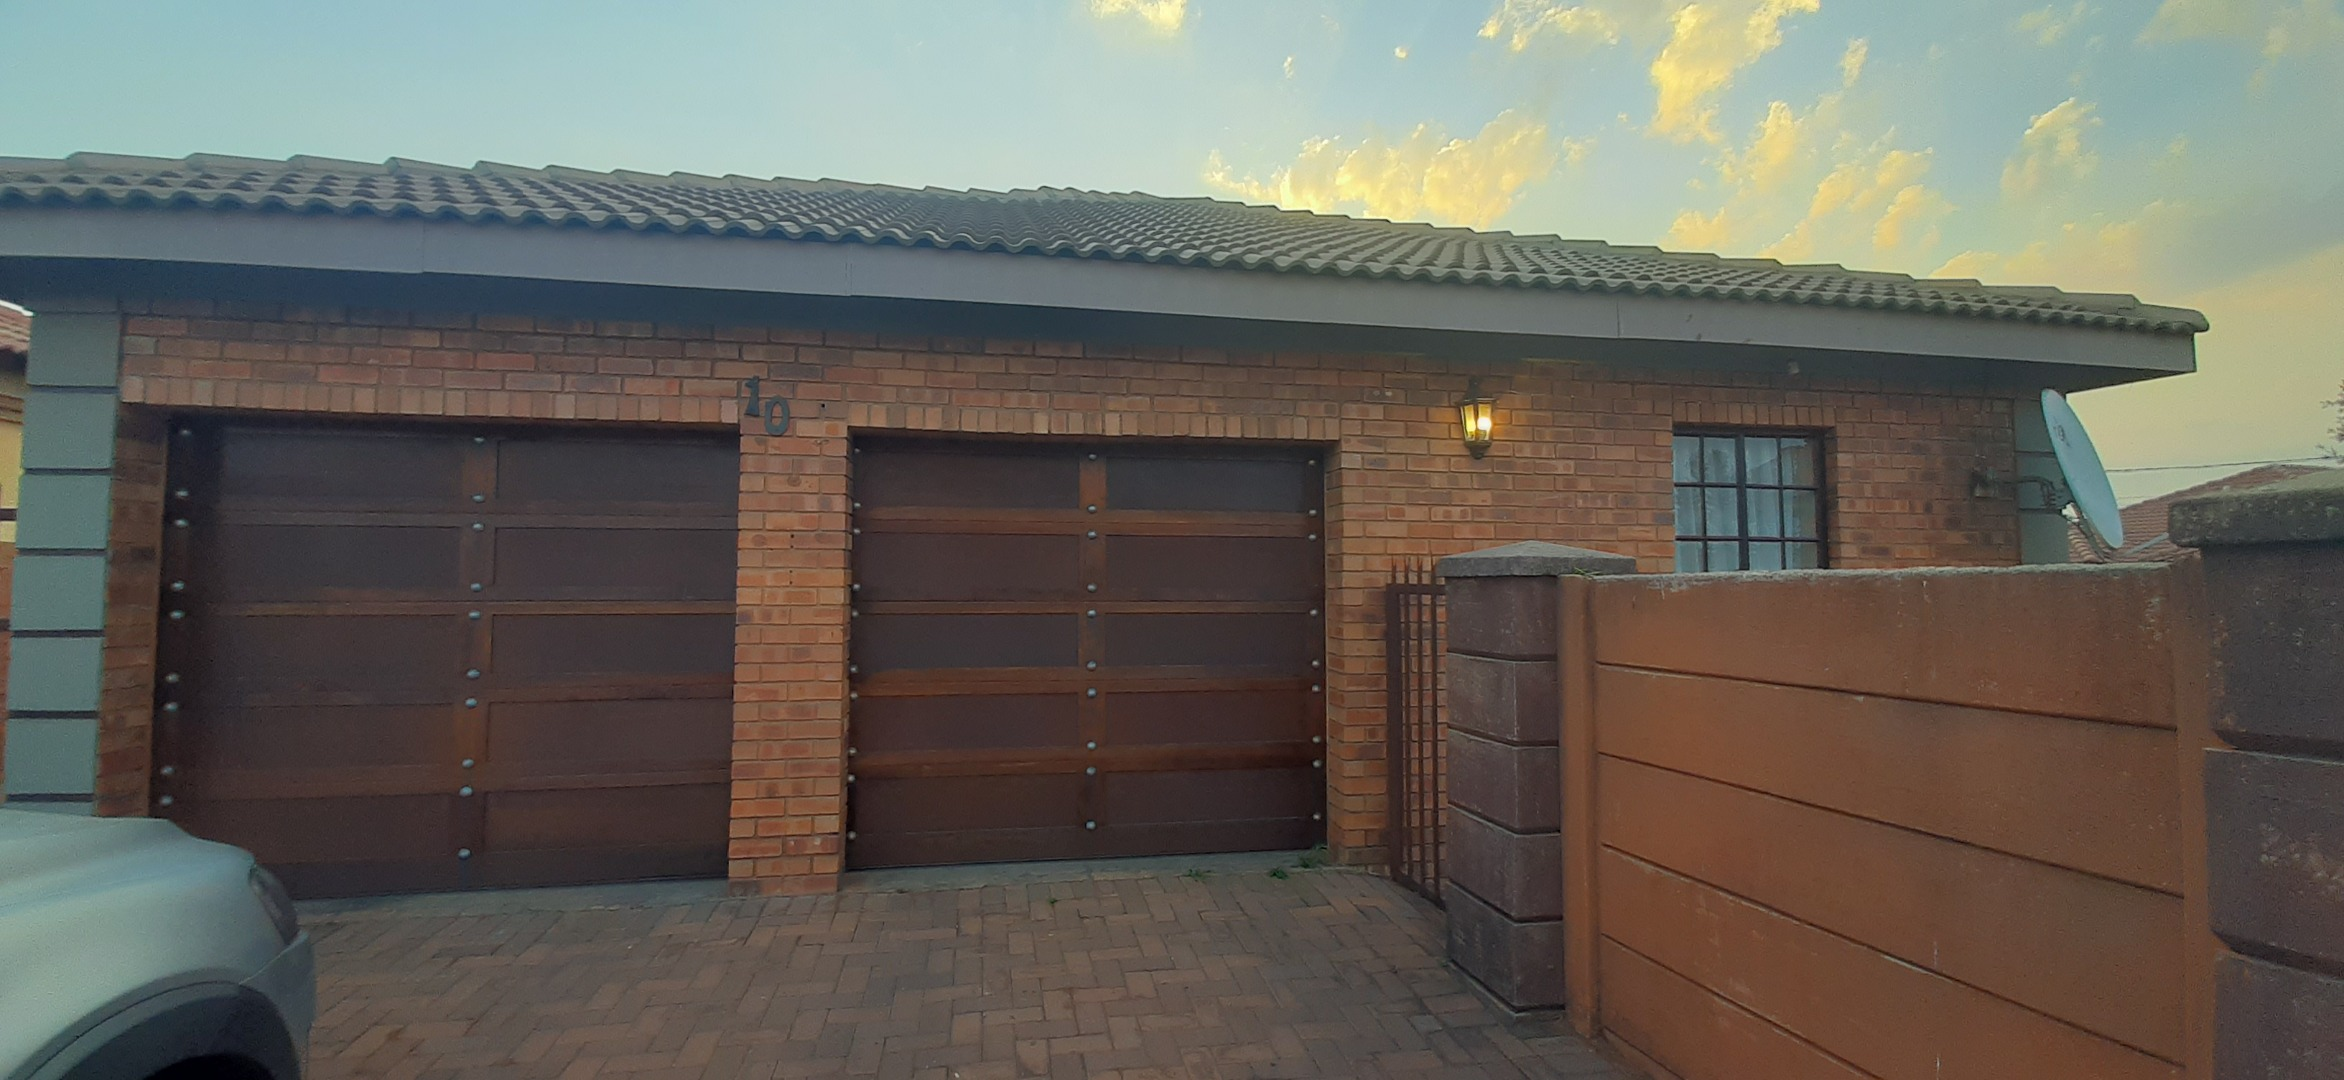 3 Bedroom House For Sale in Mineralia